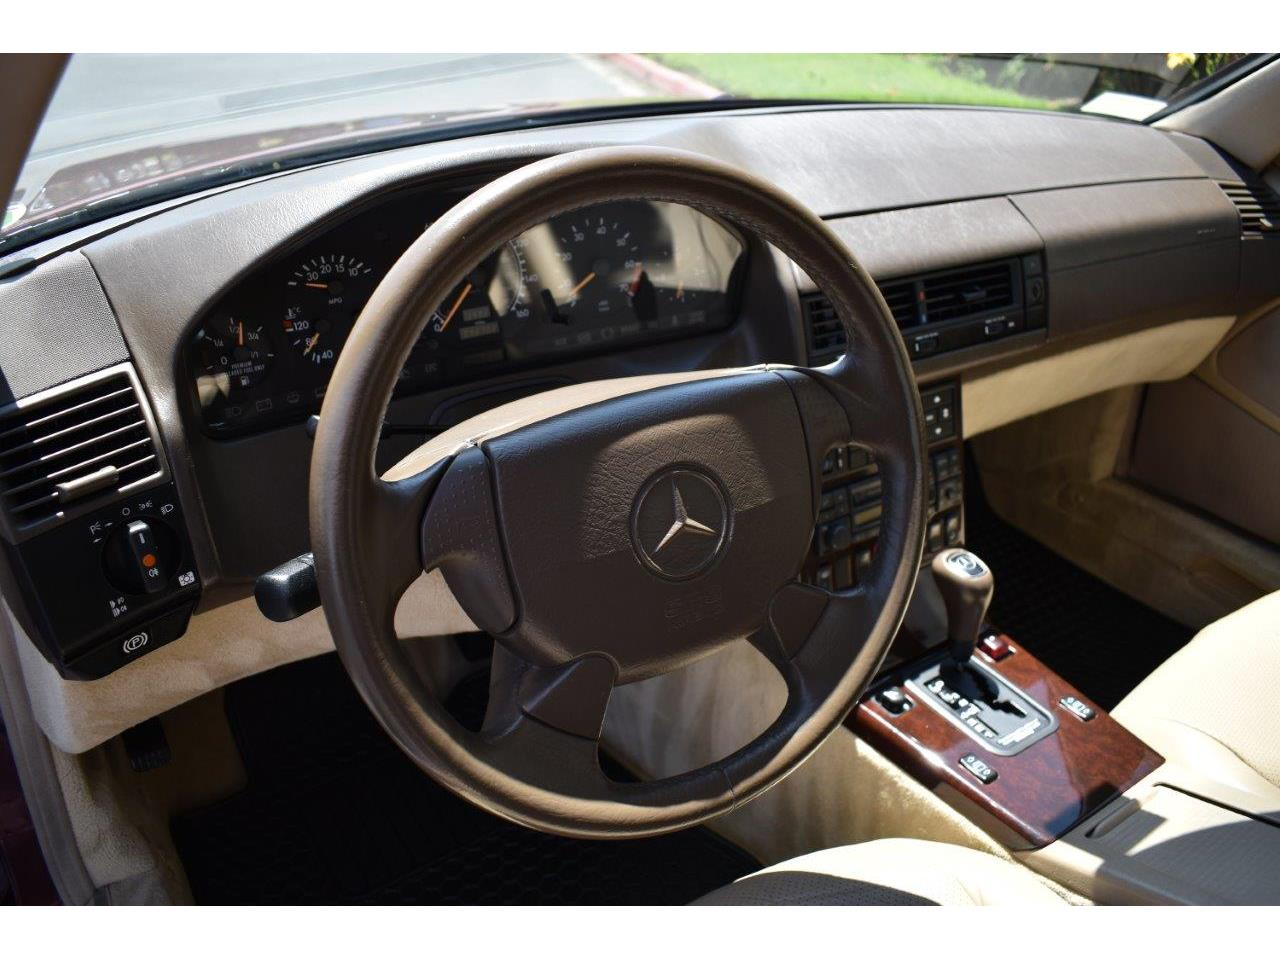 1996 Mercedes-Benz 500SL for sale in Costa Mesa, CA – photo 12